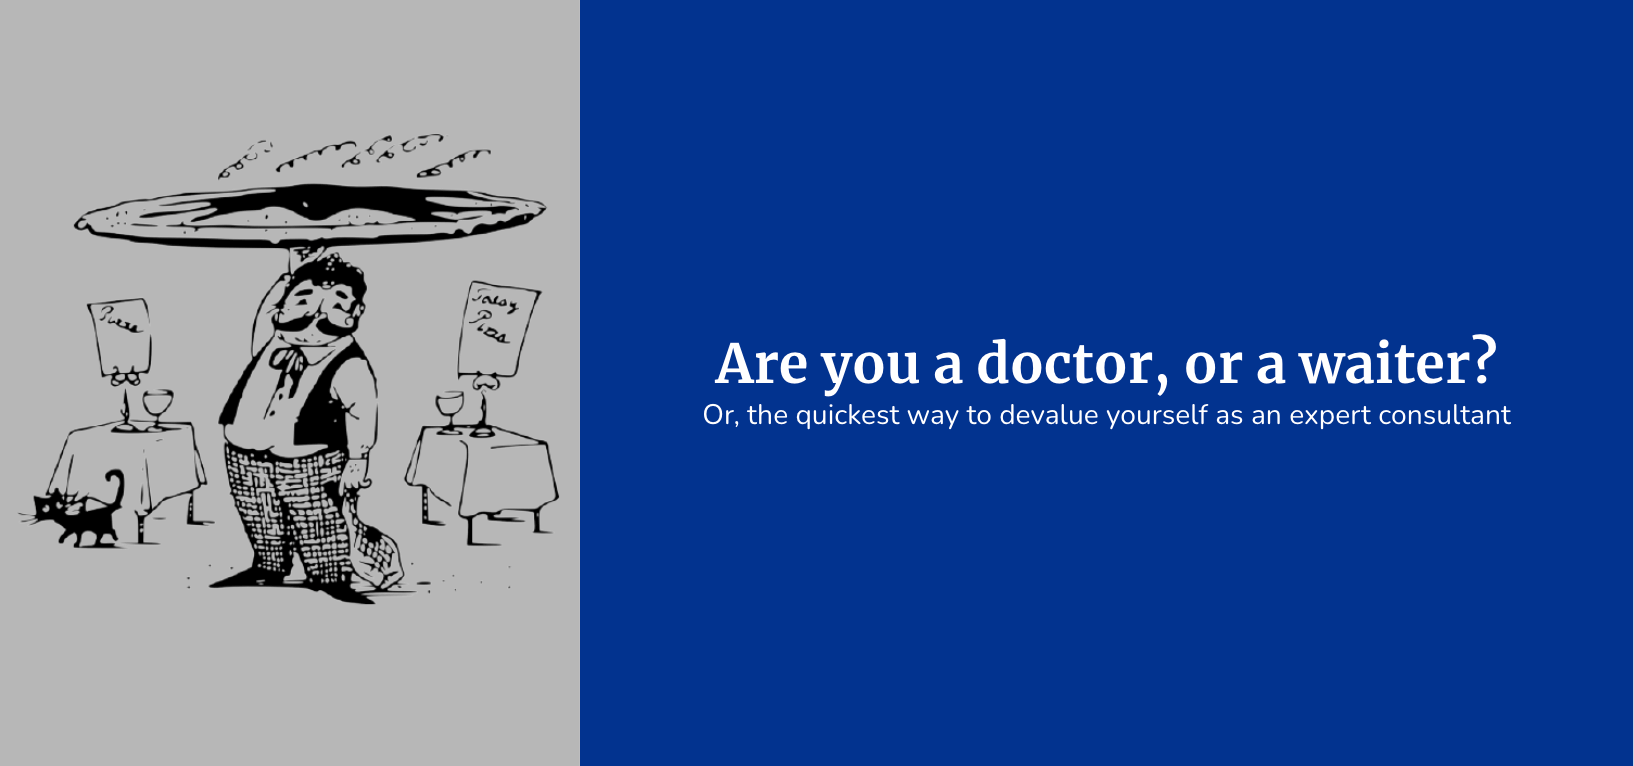 (Image - side by side of an illustration of a waiter next to text over a blue block) - Are you a doctor or waiter?